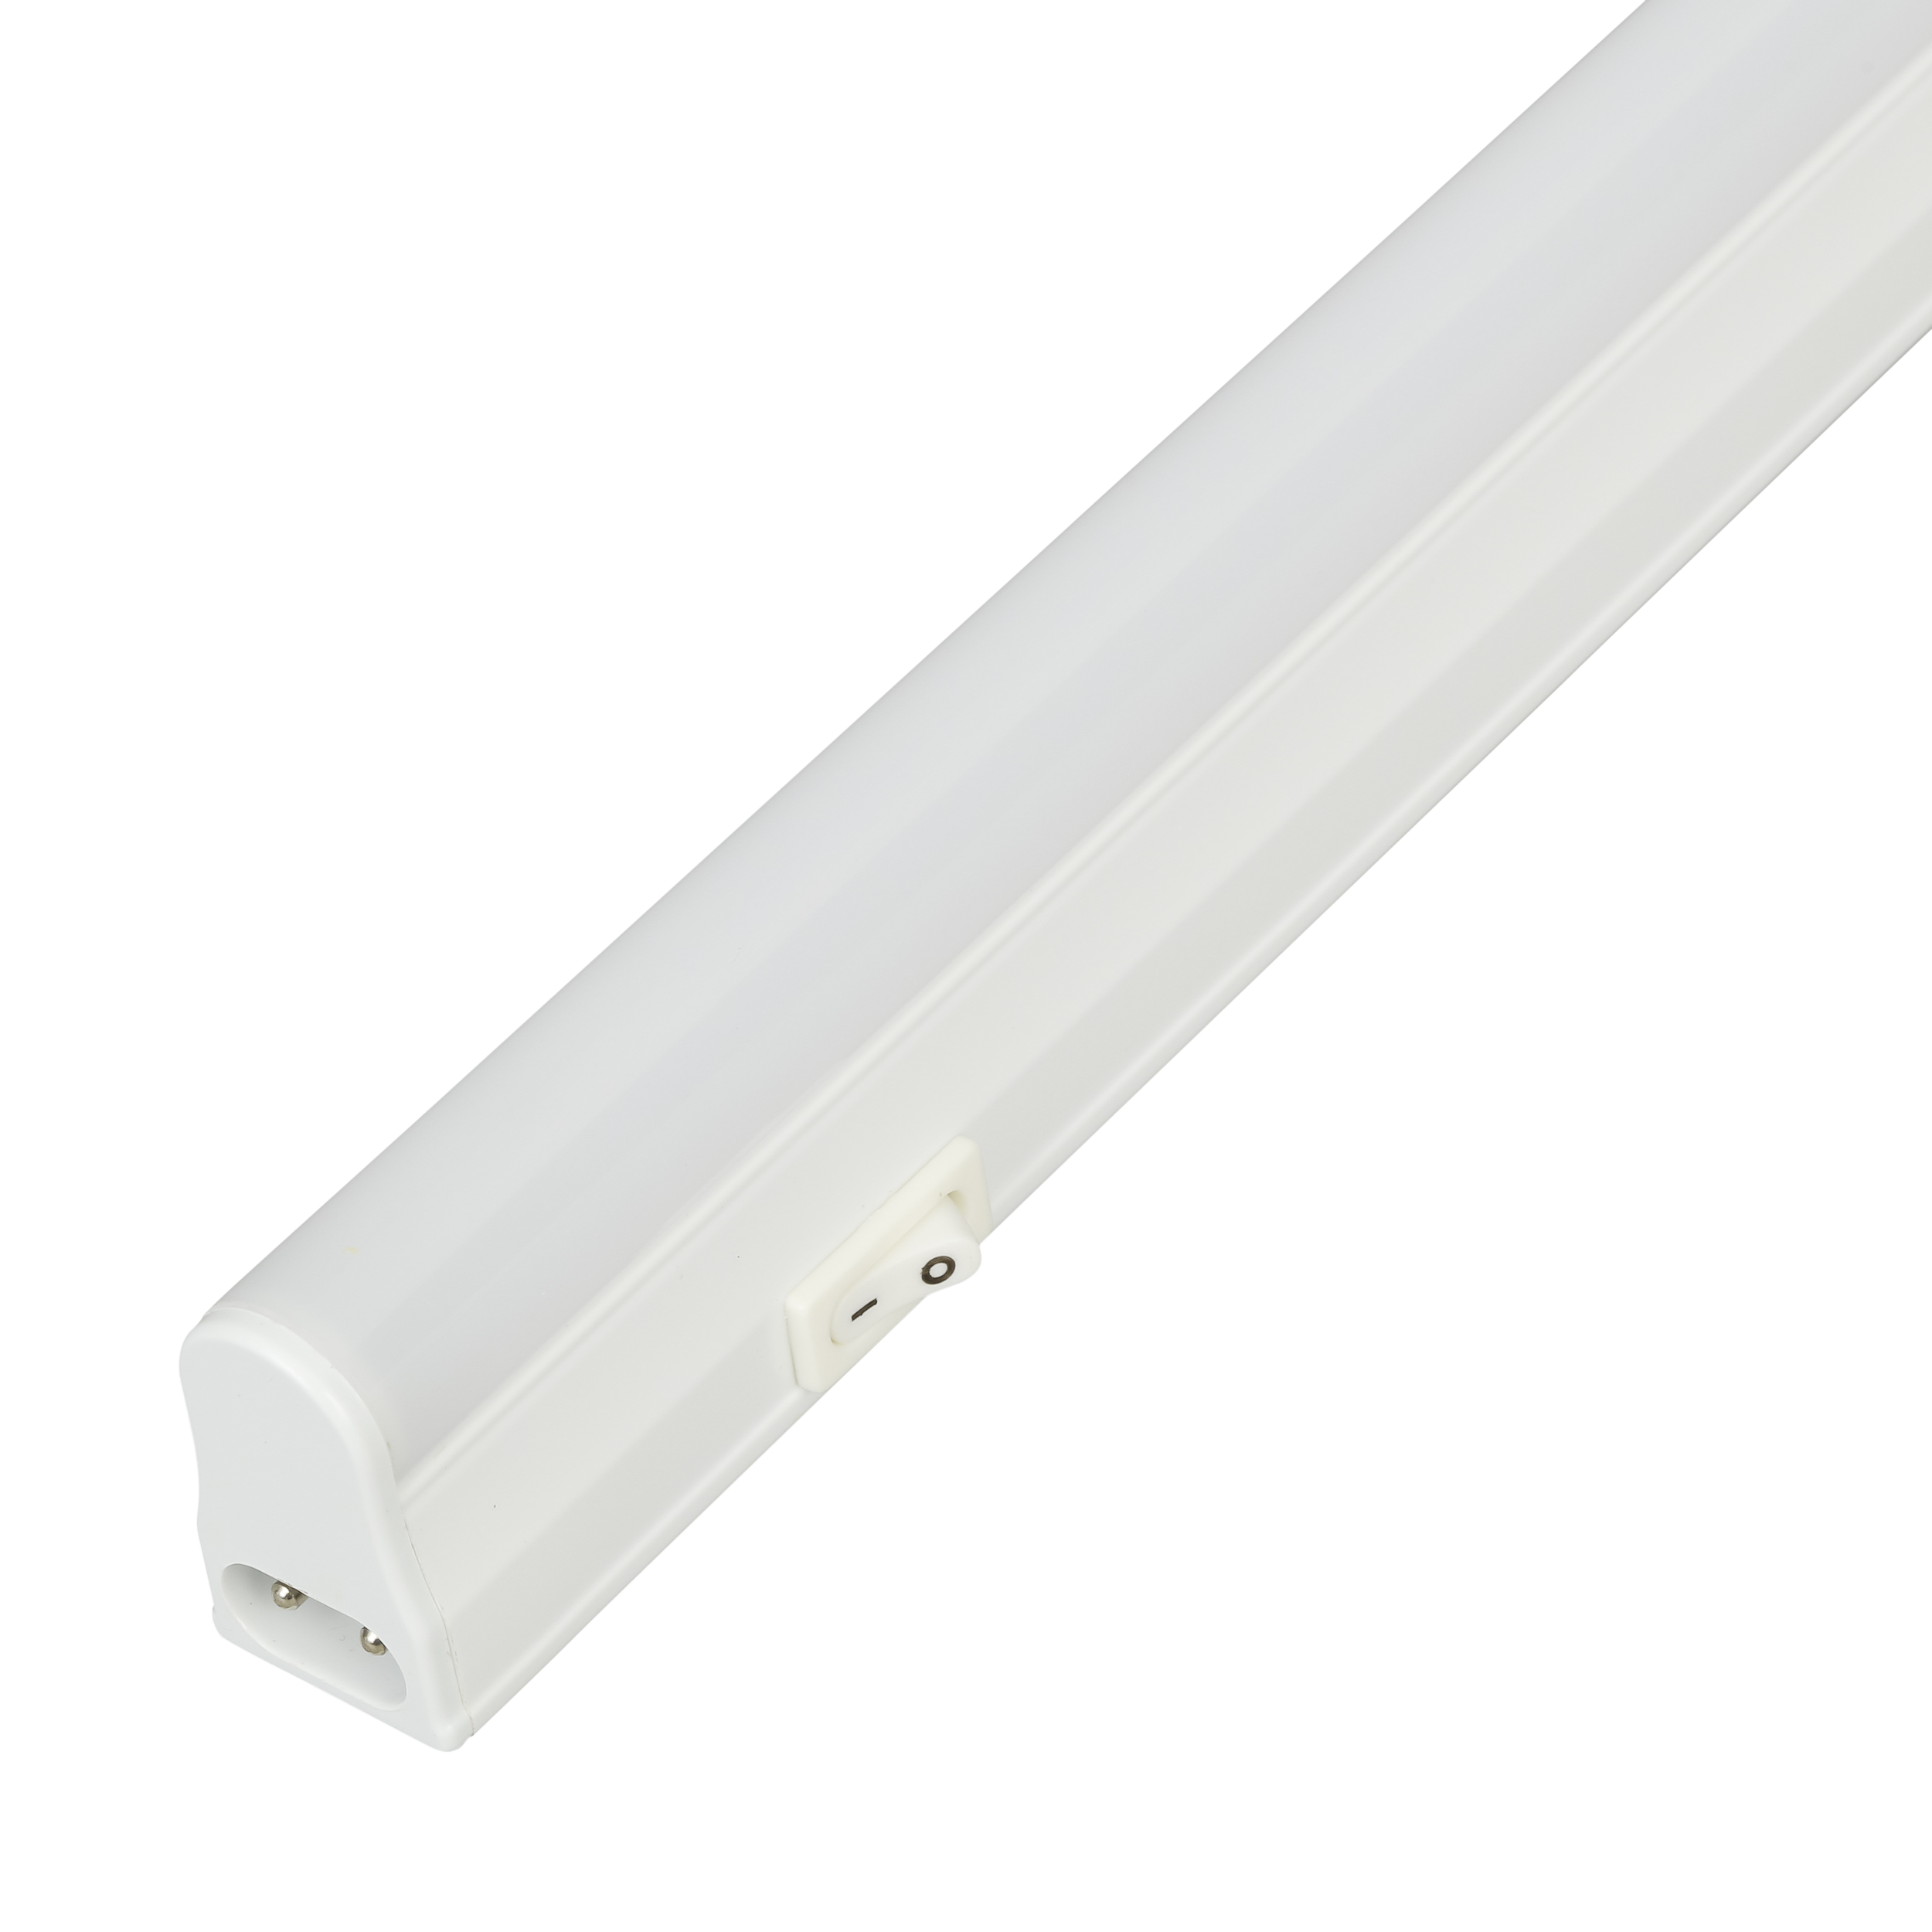 Linkable LED